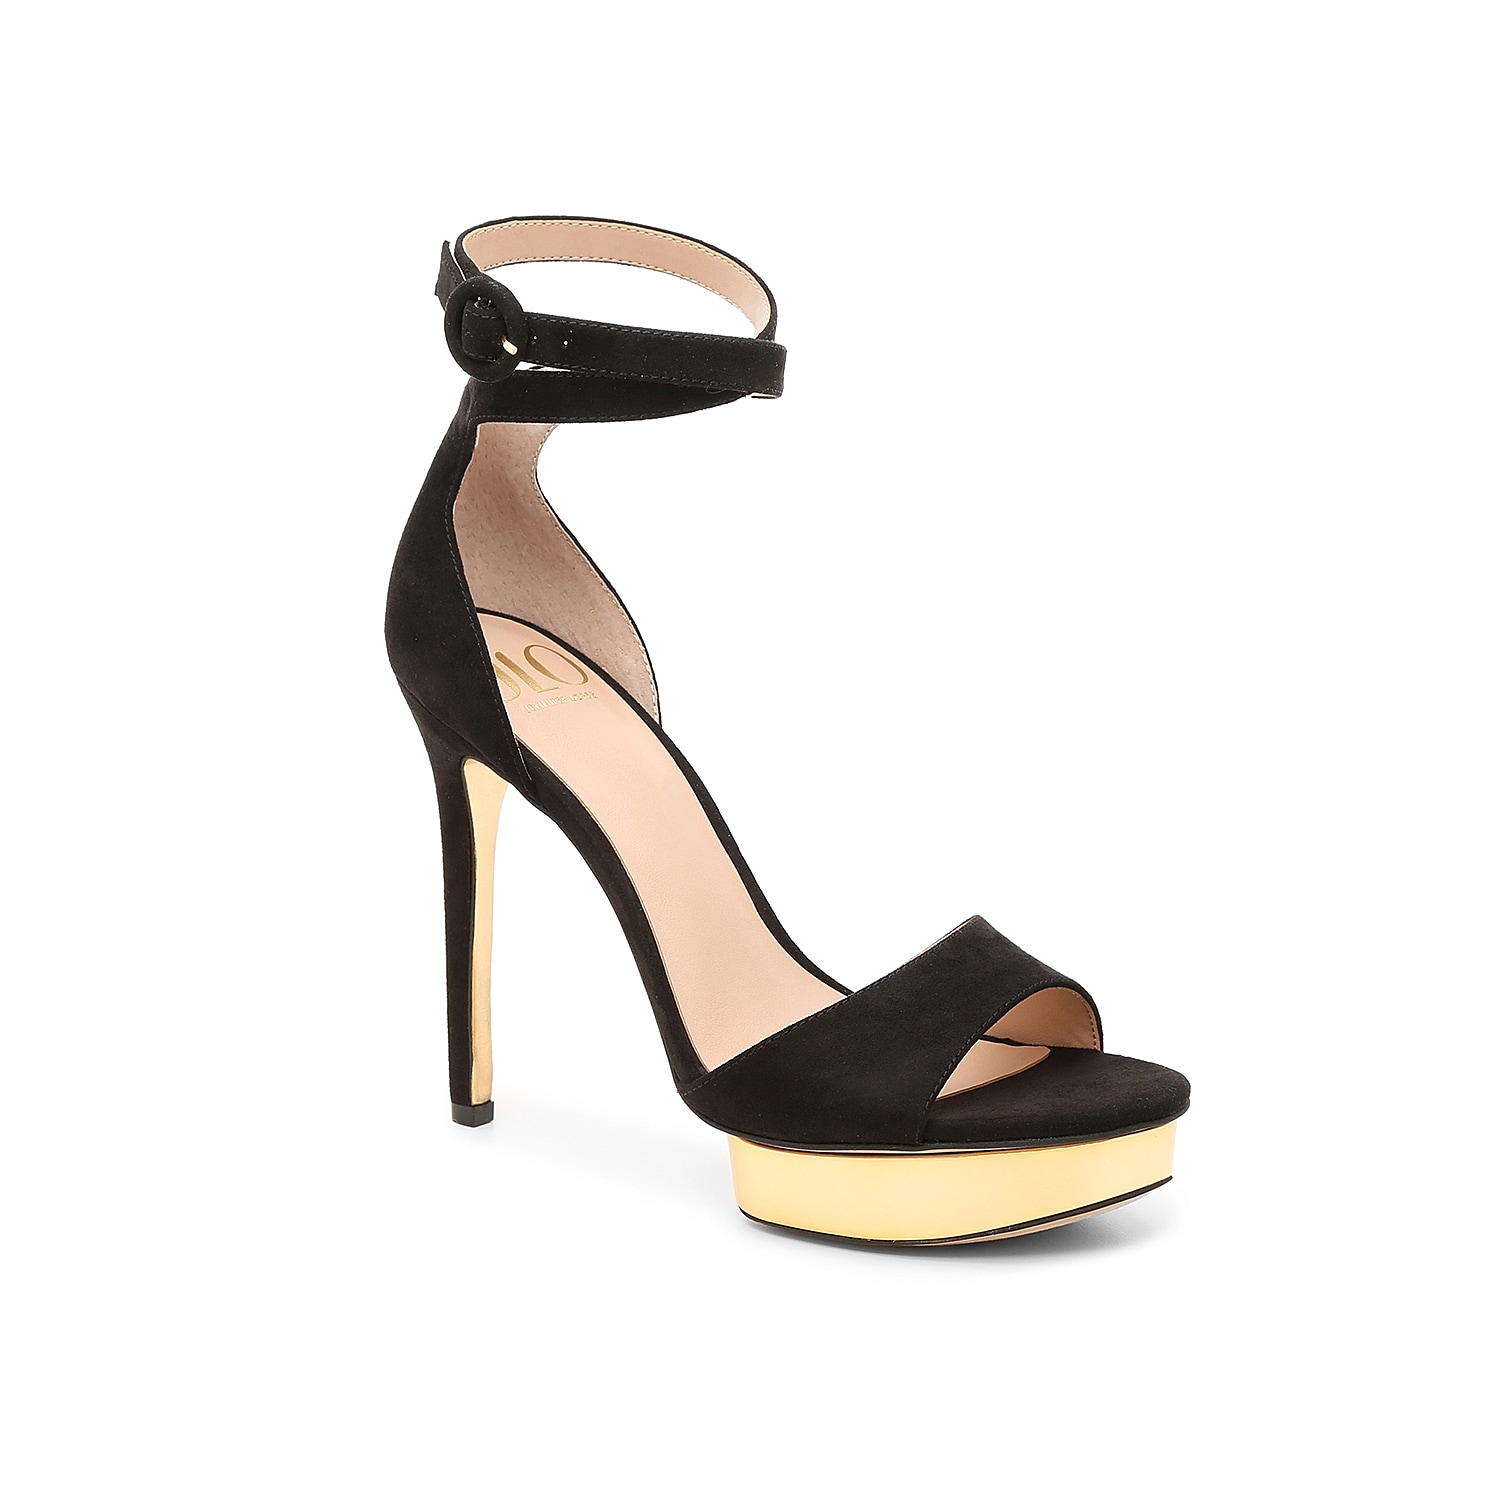 Glam metallic and a towering heel make these JLO Jennifer Lopez sandals the can\\\'t-miss pair in your night-out lineup. The Malika wraps at the ankle for sultry strapping and is detailed with a circular buckle in matching tones.